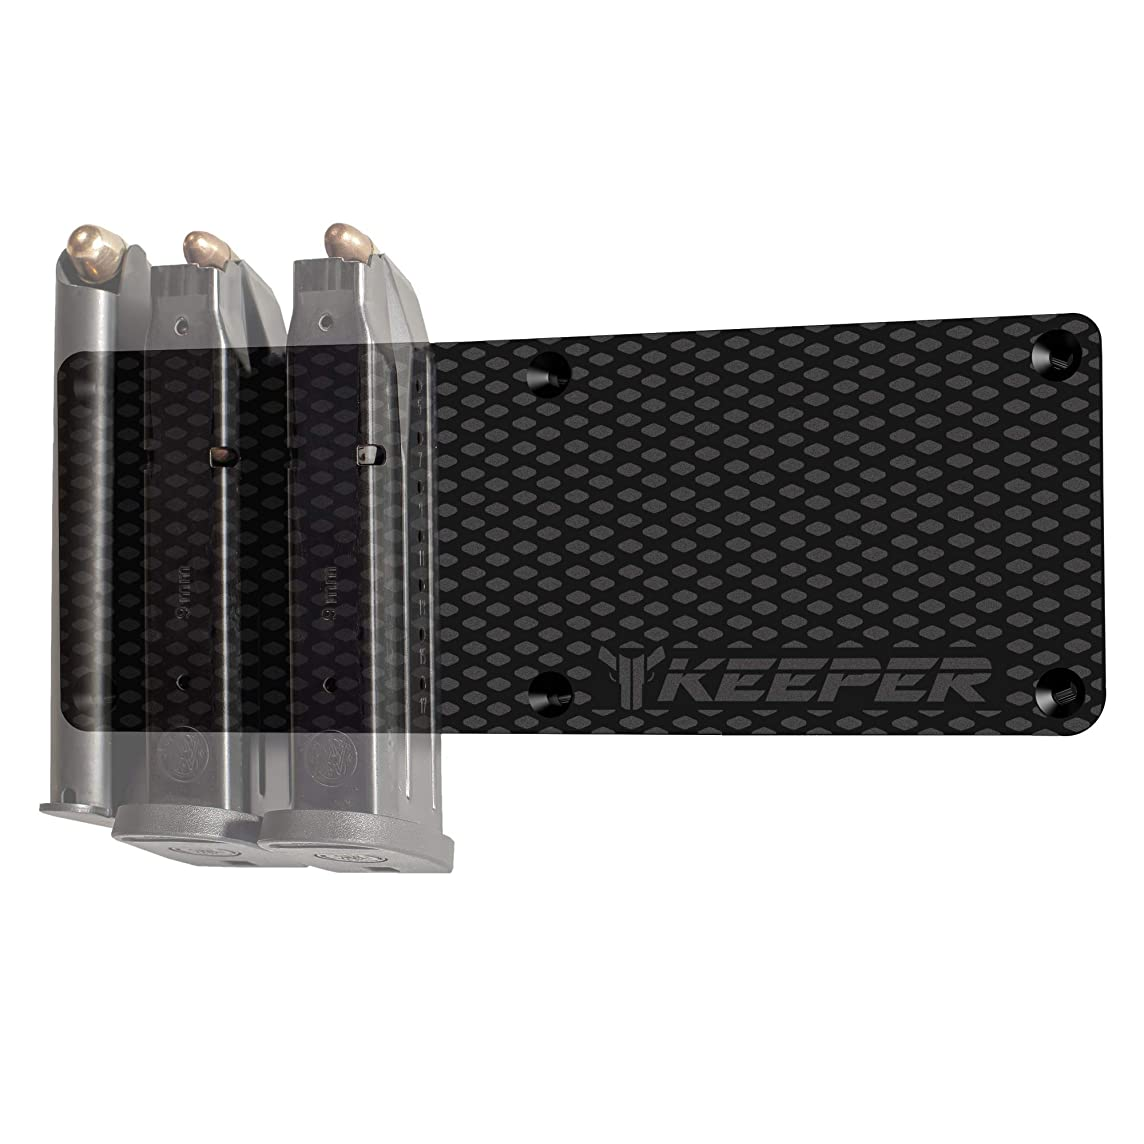 KEEPER MG Magnetic Ammunition Holder for Gun Magazines and Clips. Mount in Your Gun Safe, Locker, Cabinet, Vault. The Ultimate Ammo Storage Accessories for Handgun, Pistol and Rifle Mags.